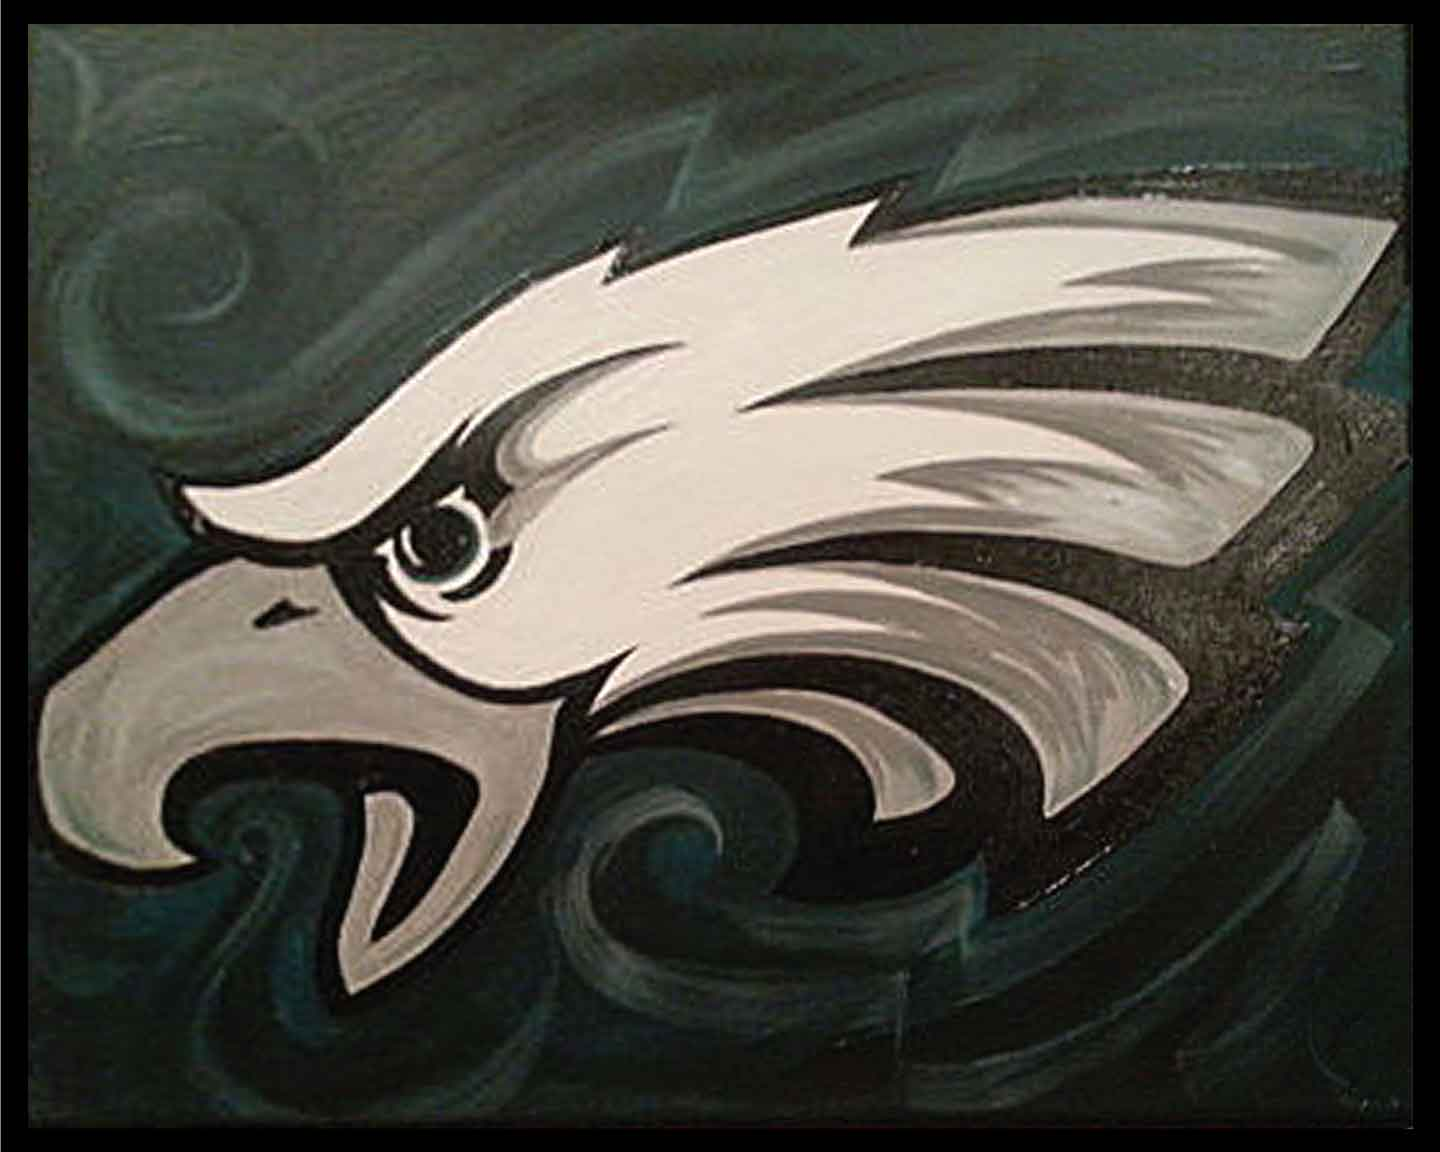 Eagles Fan (#516) • Created by Tara • 16x20 • Tier 3